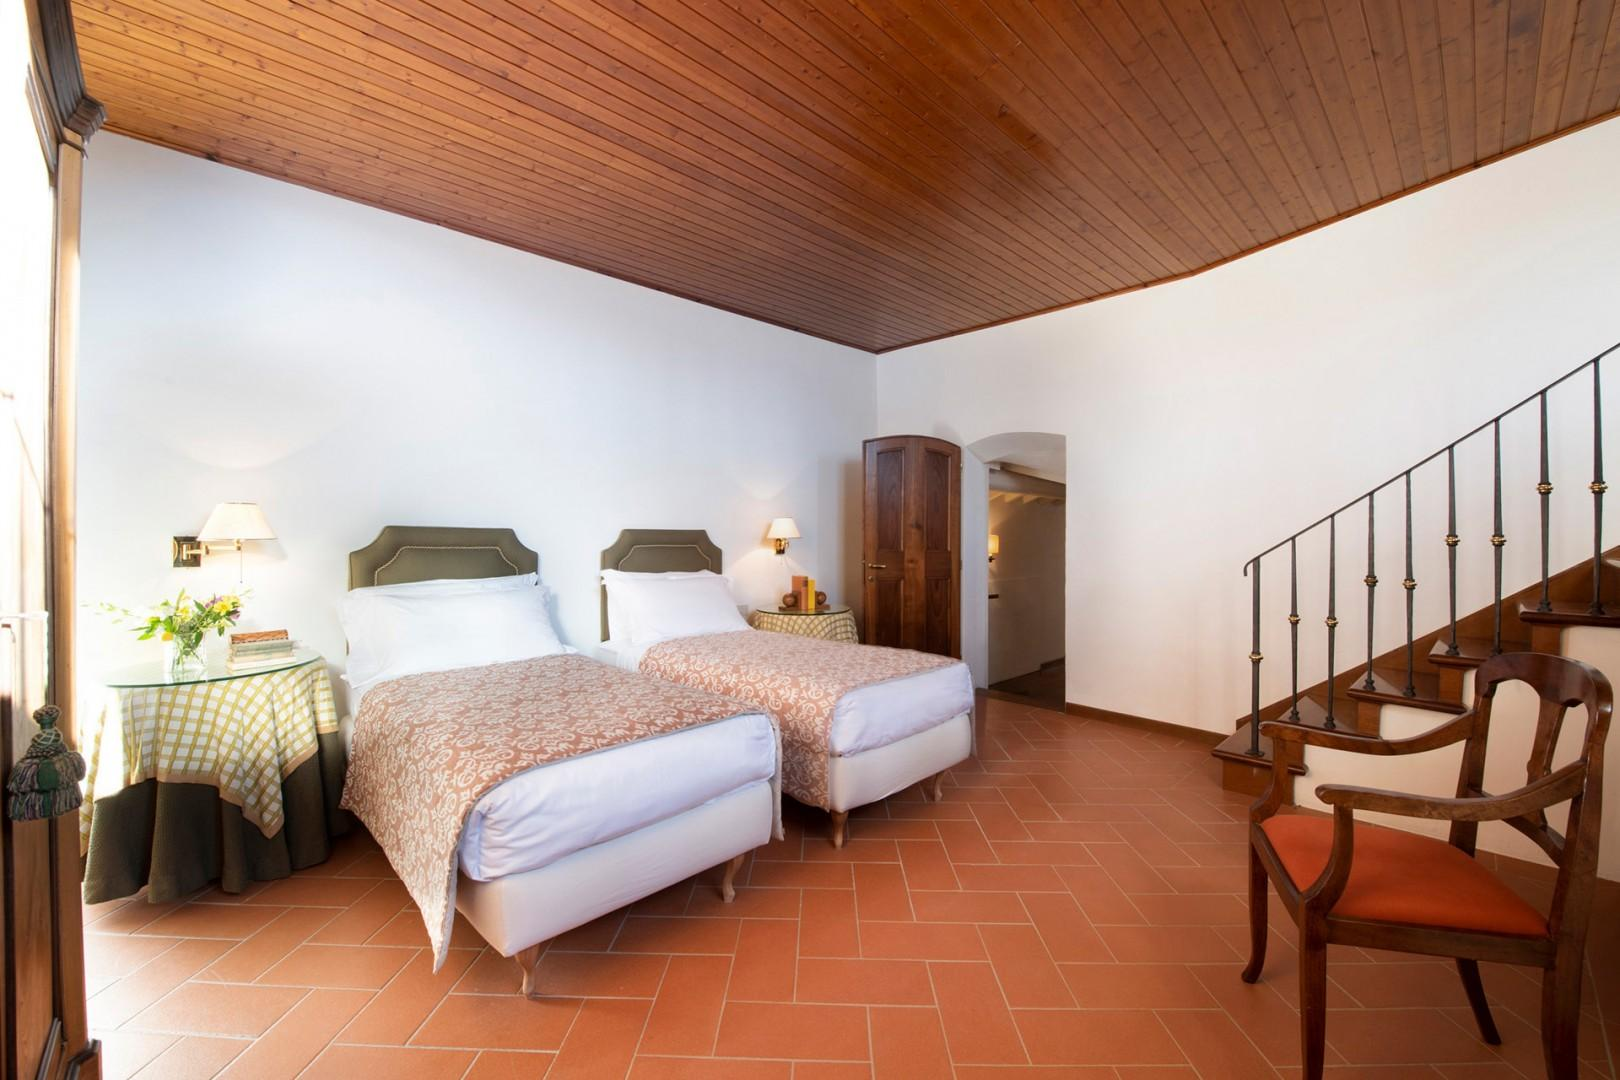 Spacious bedroom 4 with combinable beds.